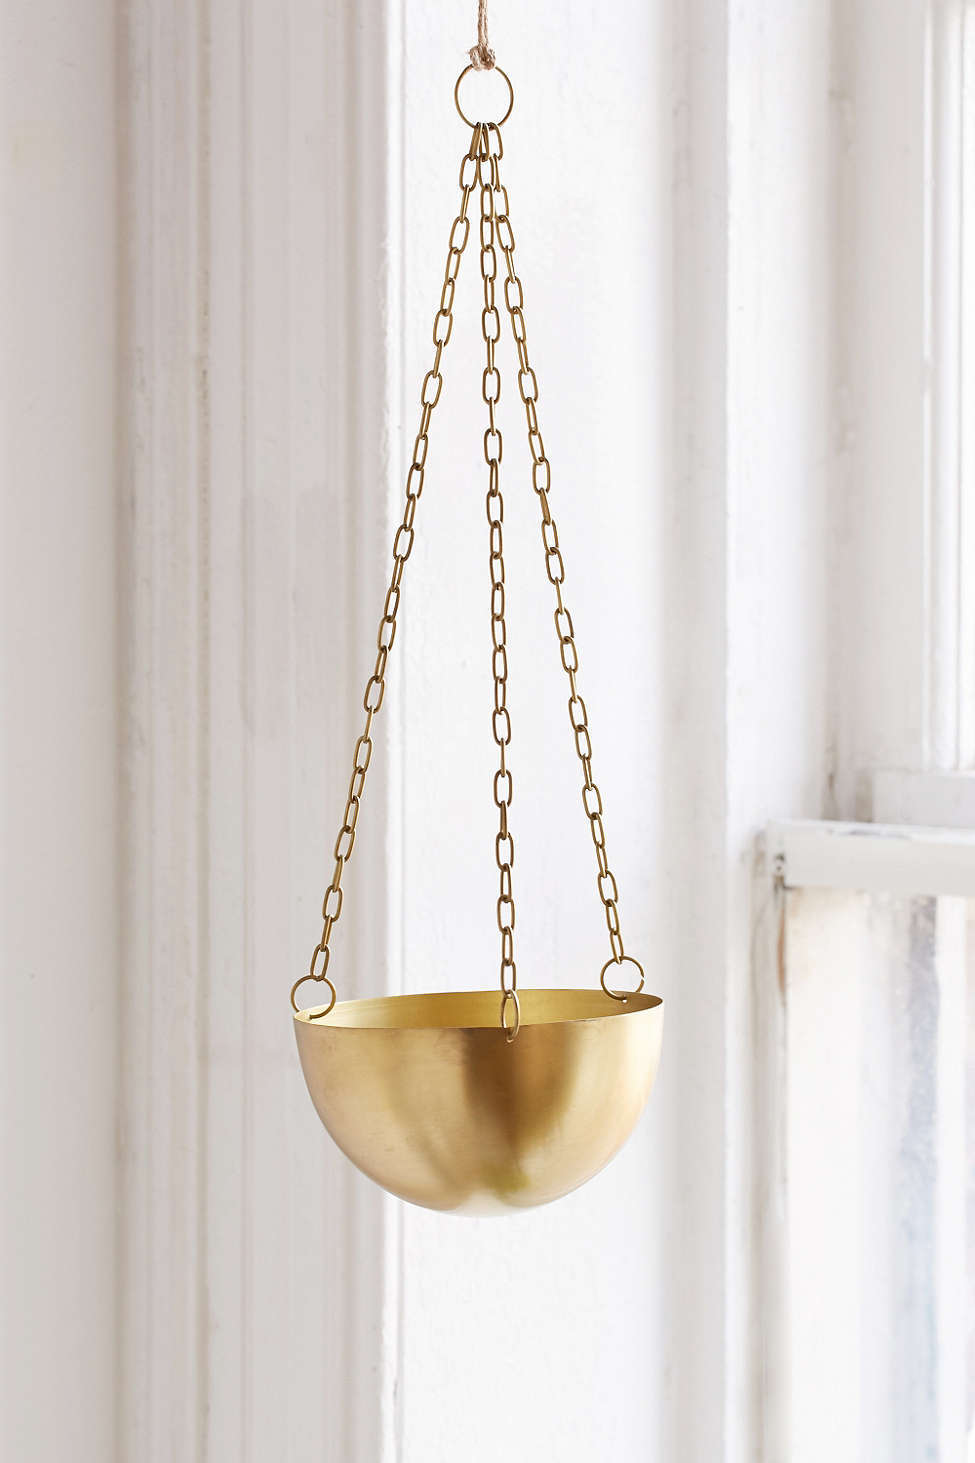 送込み_UO*Hanging Metal Planter 各色♪